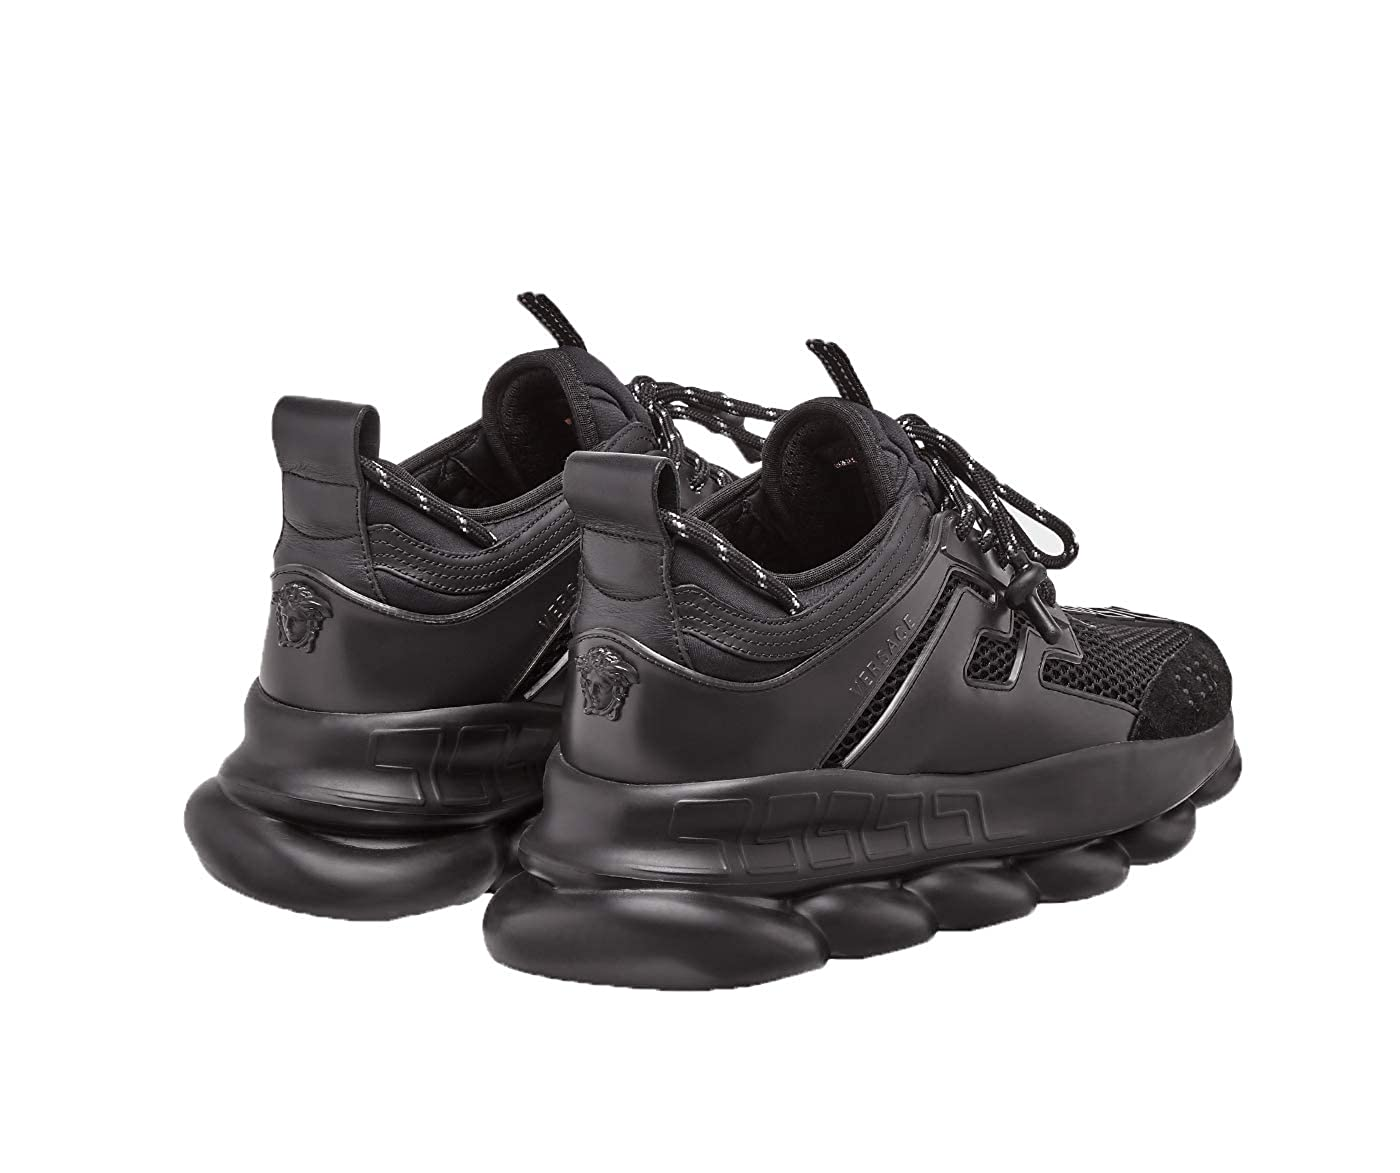 6c05d157 Amazon.com: Versace Men's Black Chain Reactions Fashion Sneakers Shoes US  13 IT 46: Shoes